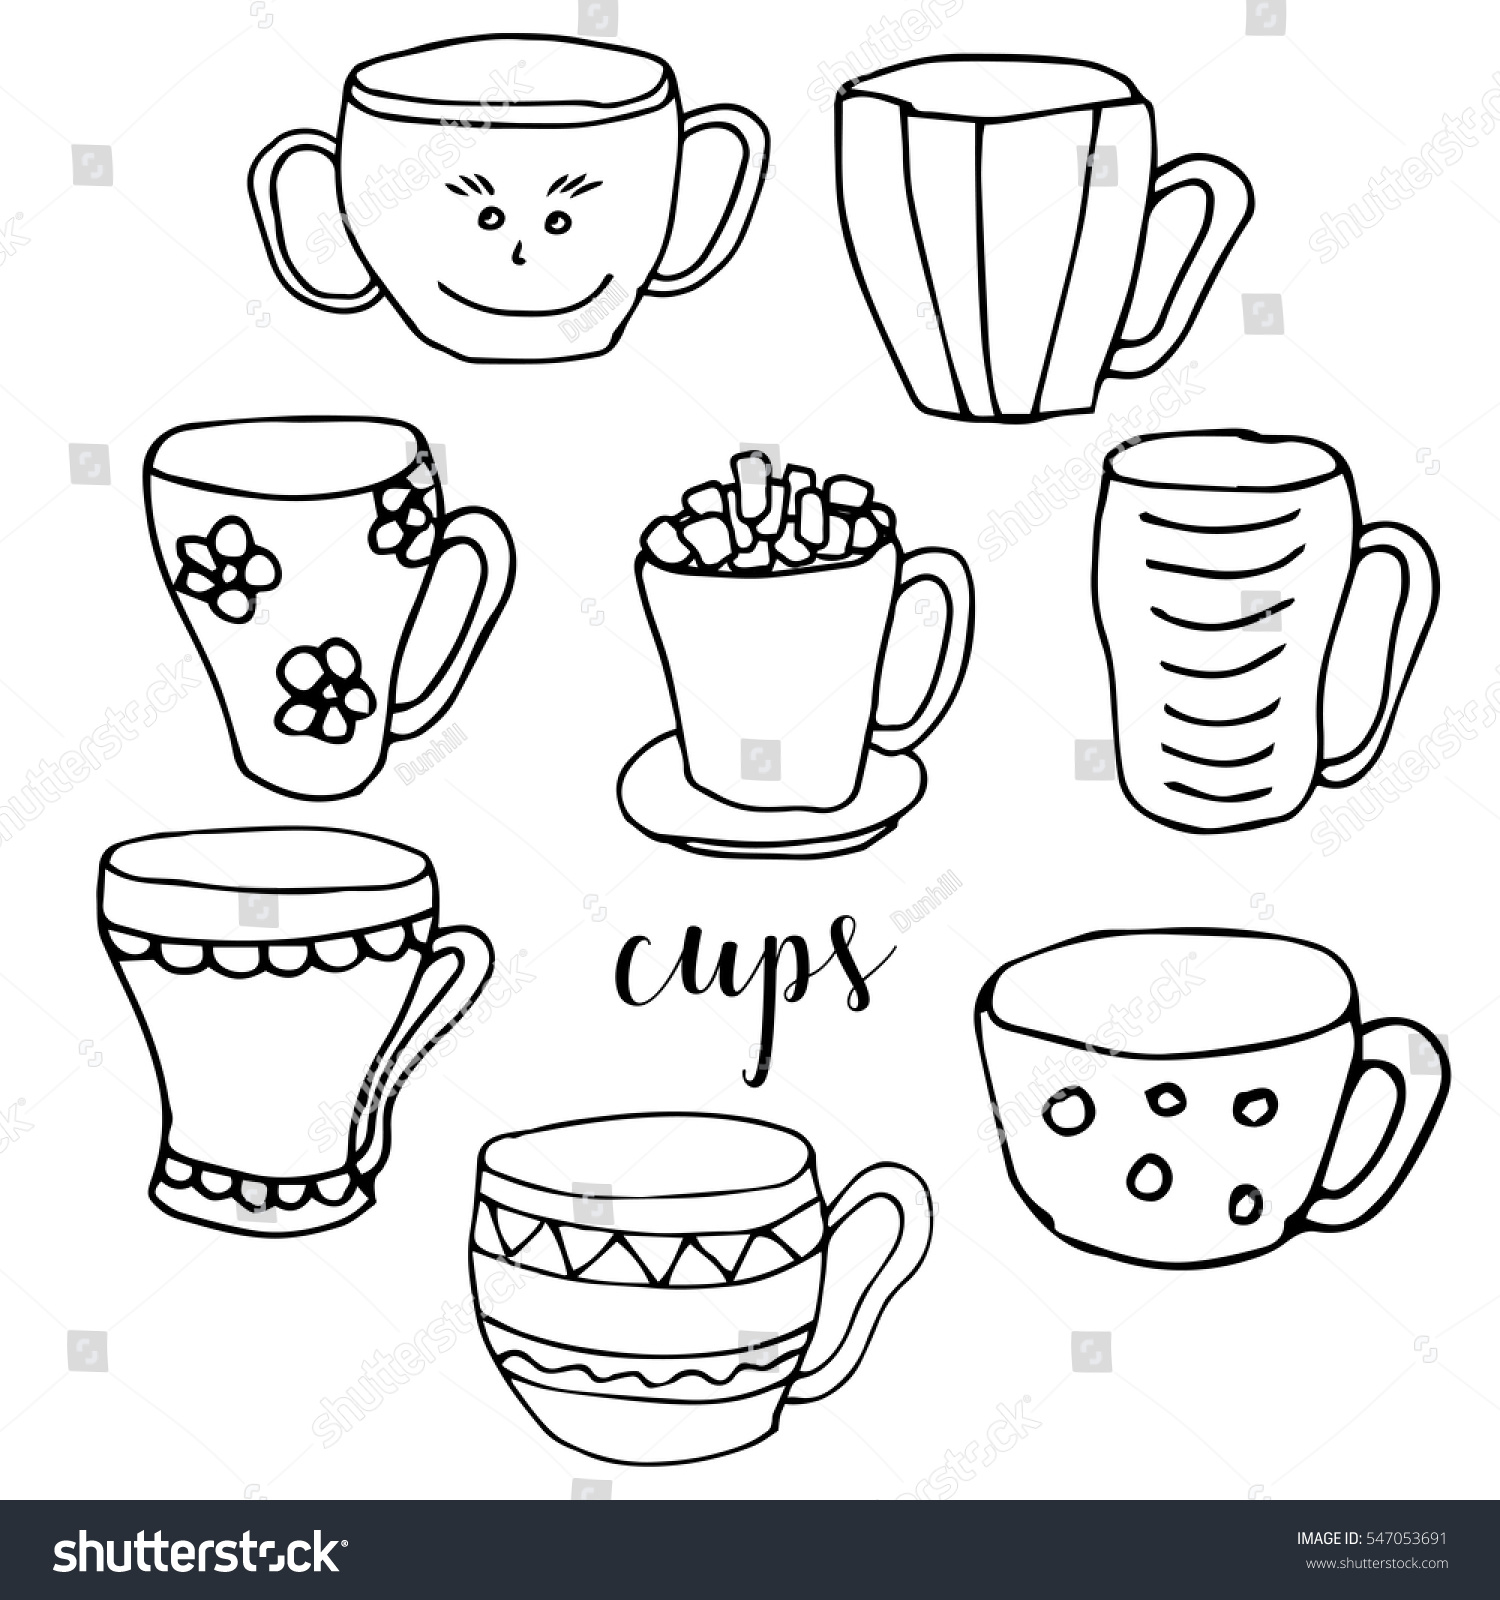 Set Of Children Drawing A Cups The Template For Painting Hand Drawn Dishes